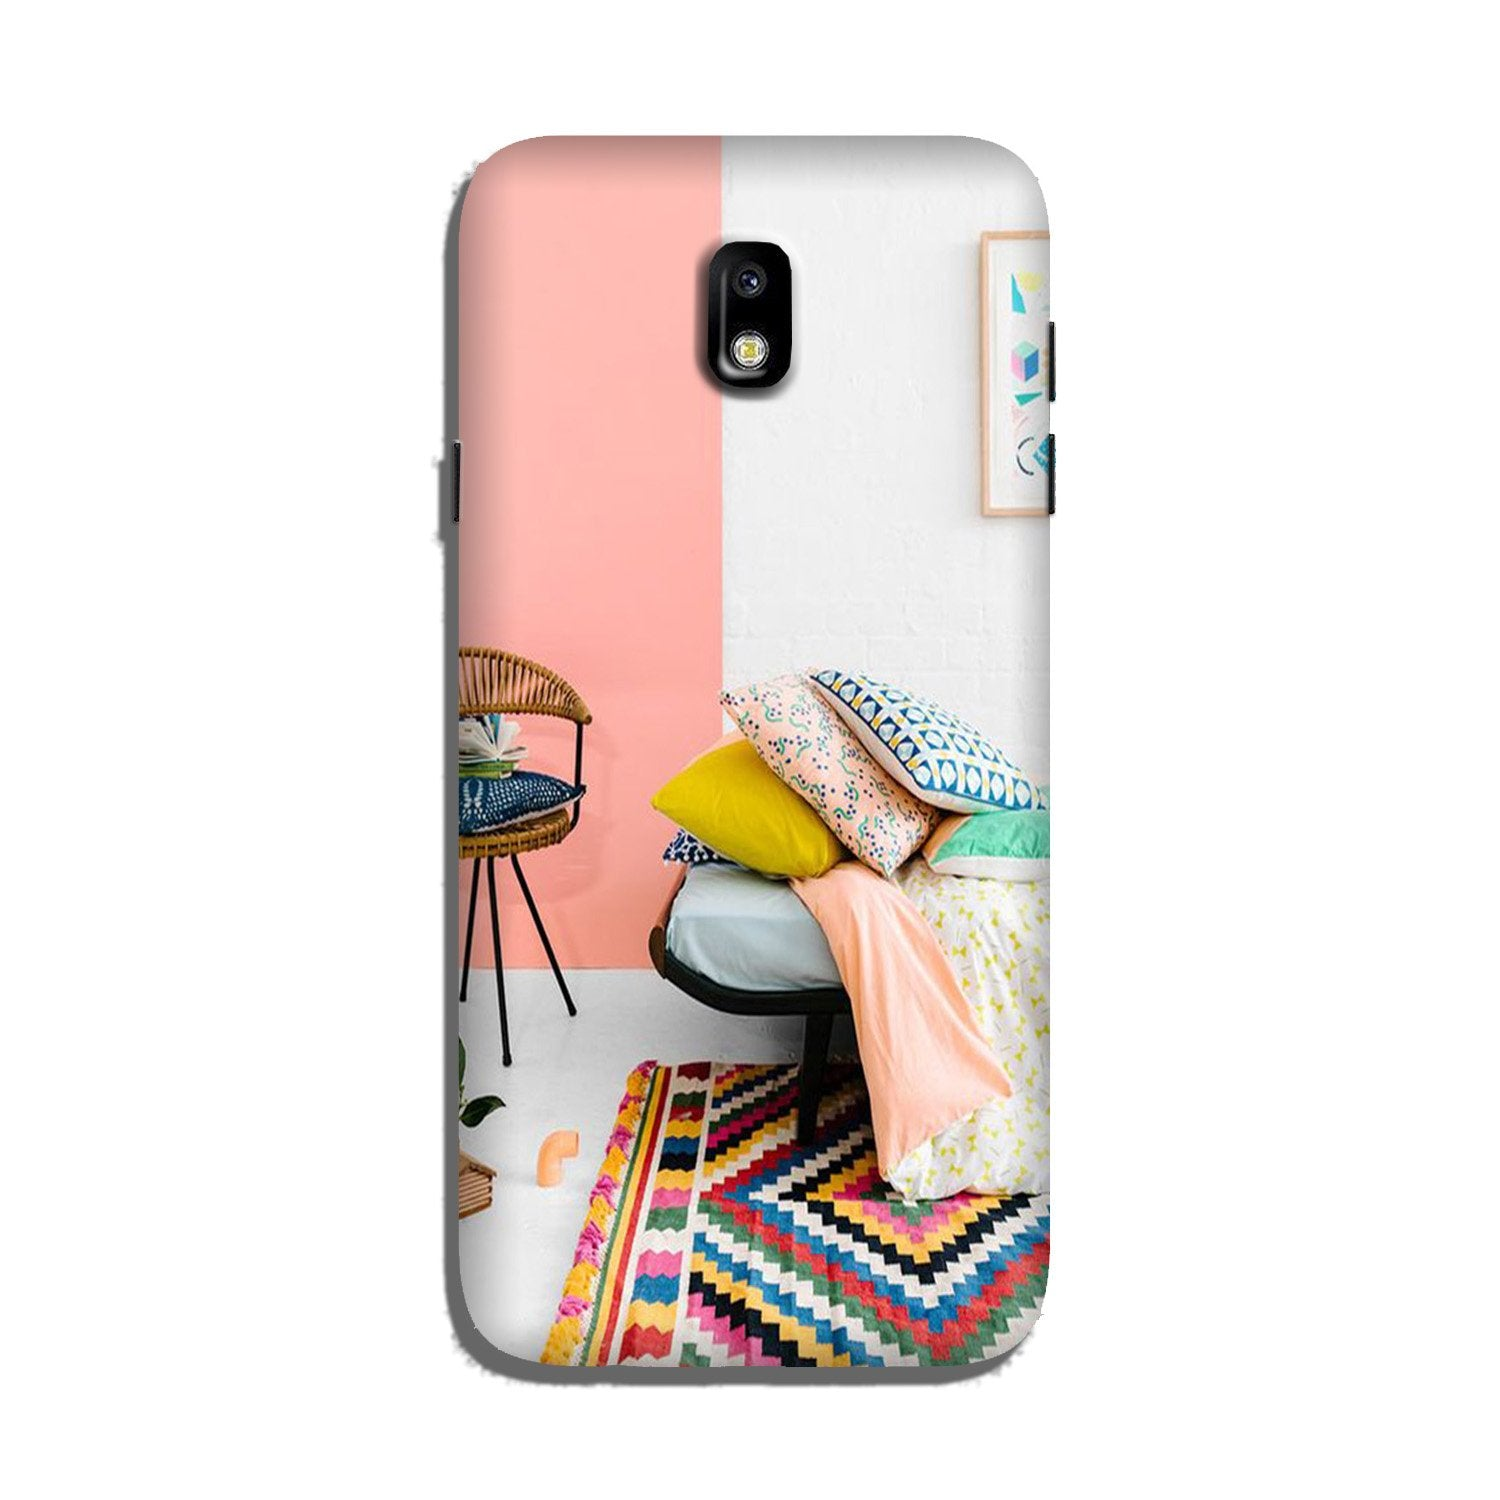 Home Décor Case for Galaxy J5 Pro